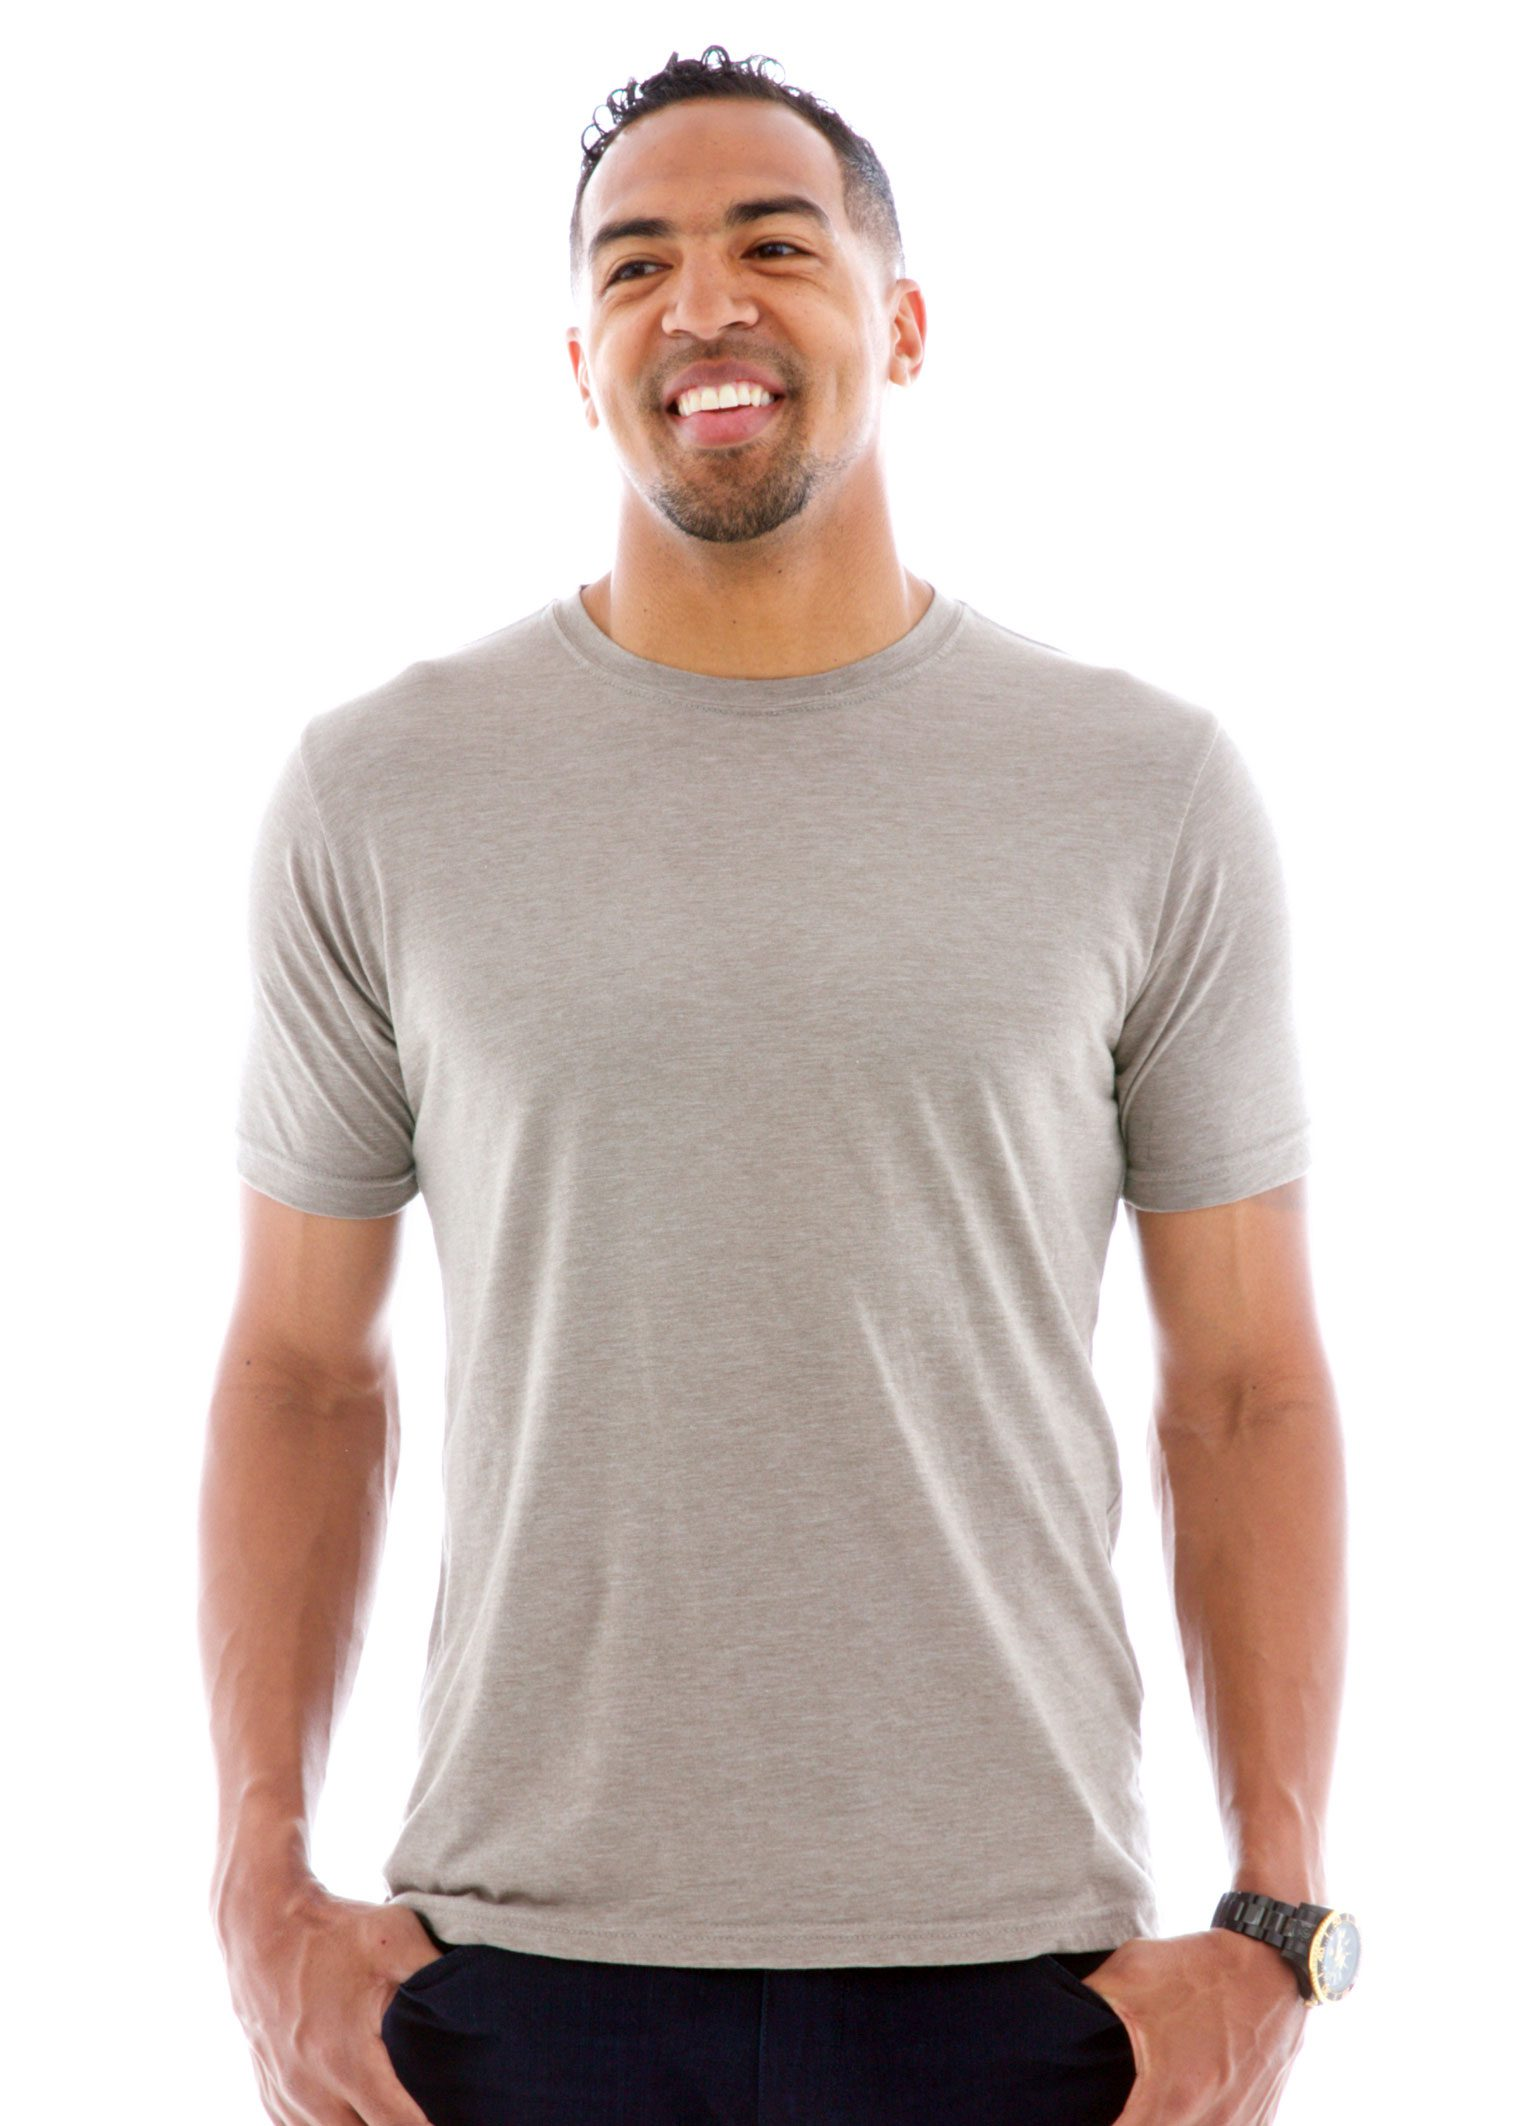 Heathered Crew Short Sleeve T-Shirt Front View